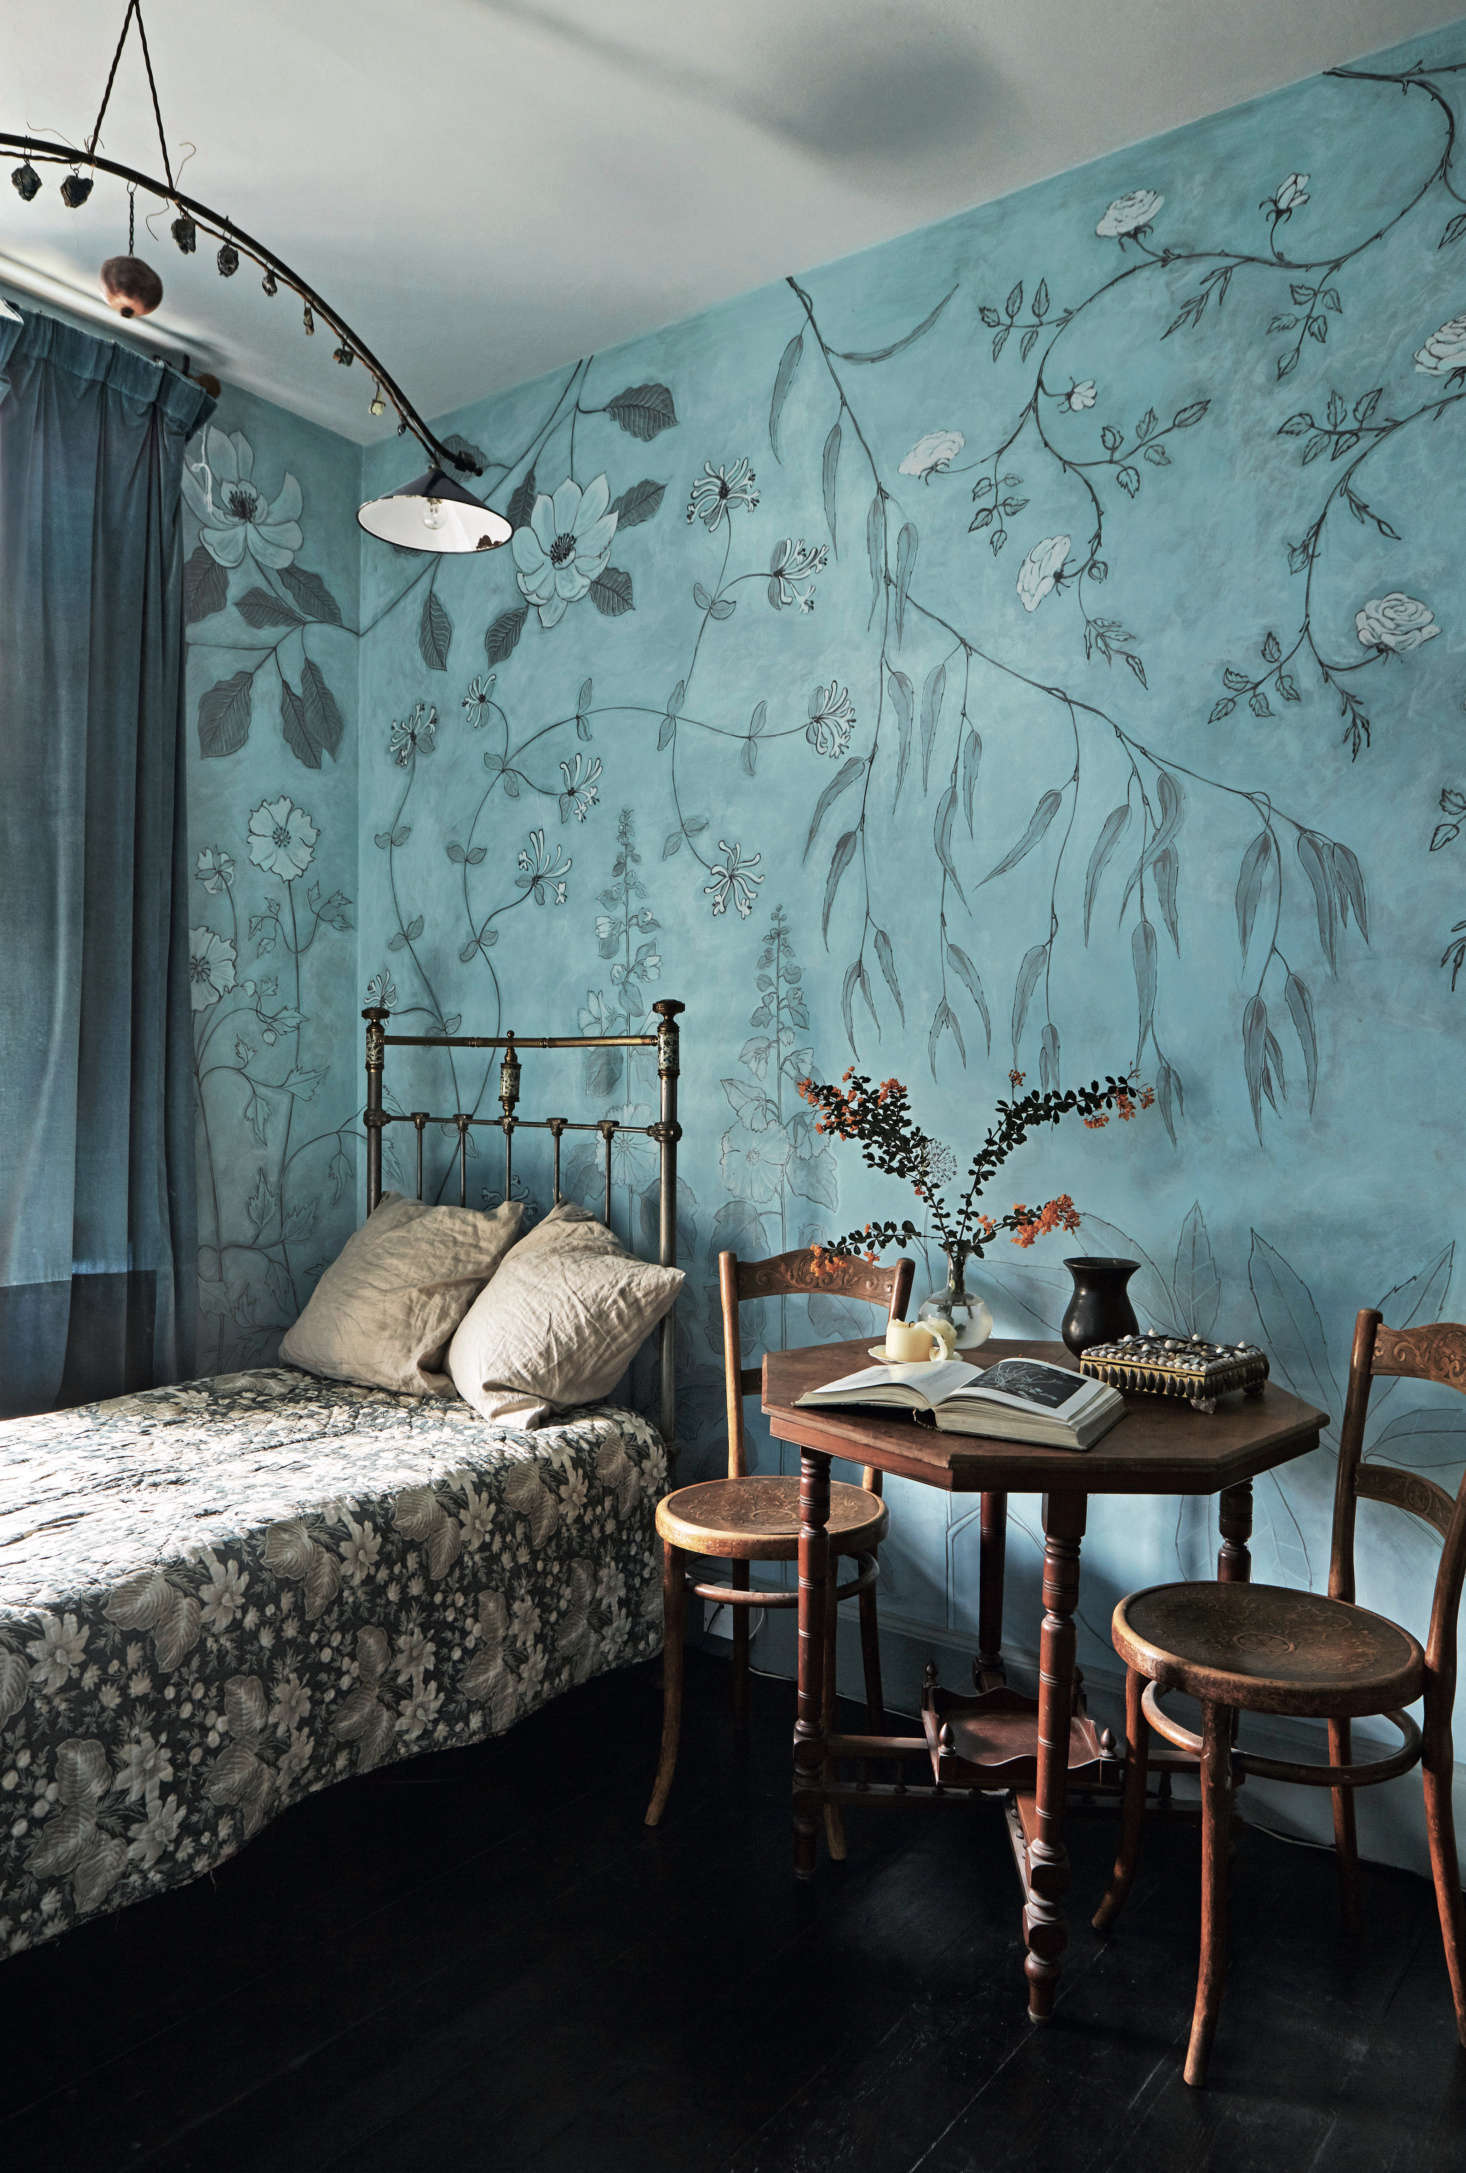 David and Anita's daughter described the wallpaper she had in mind for her room, and when they couldn't find it, David painted it himself. See more of his work at David Campbell and inPerfect English Townhouse.